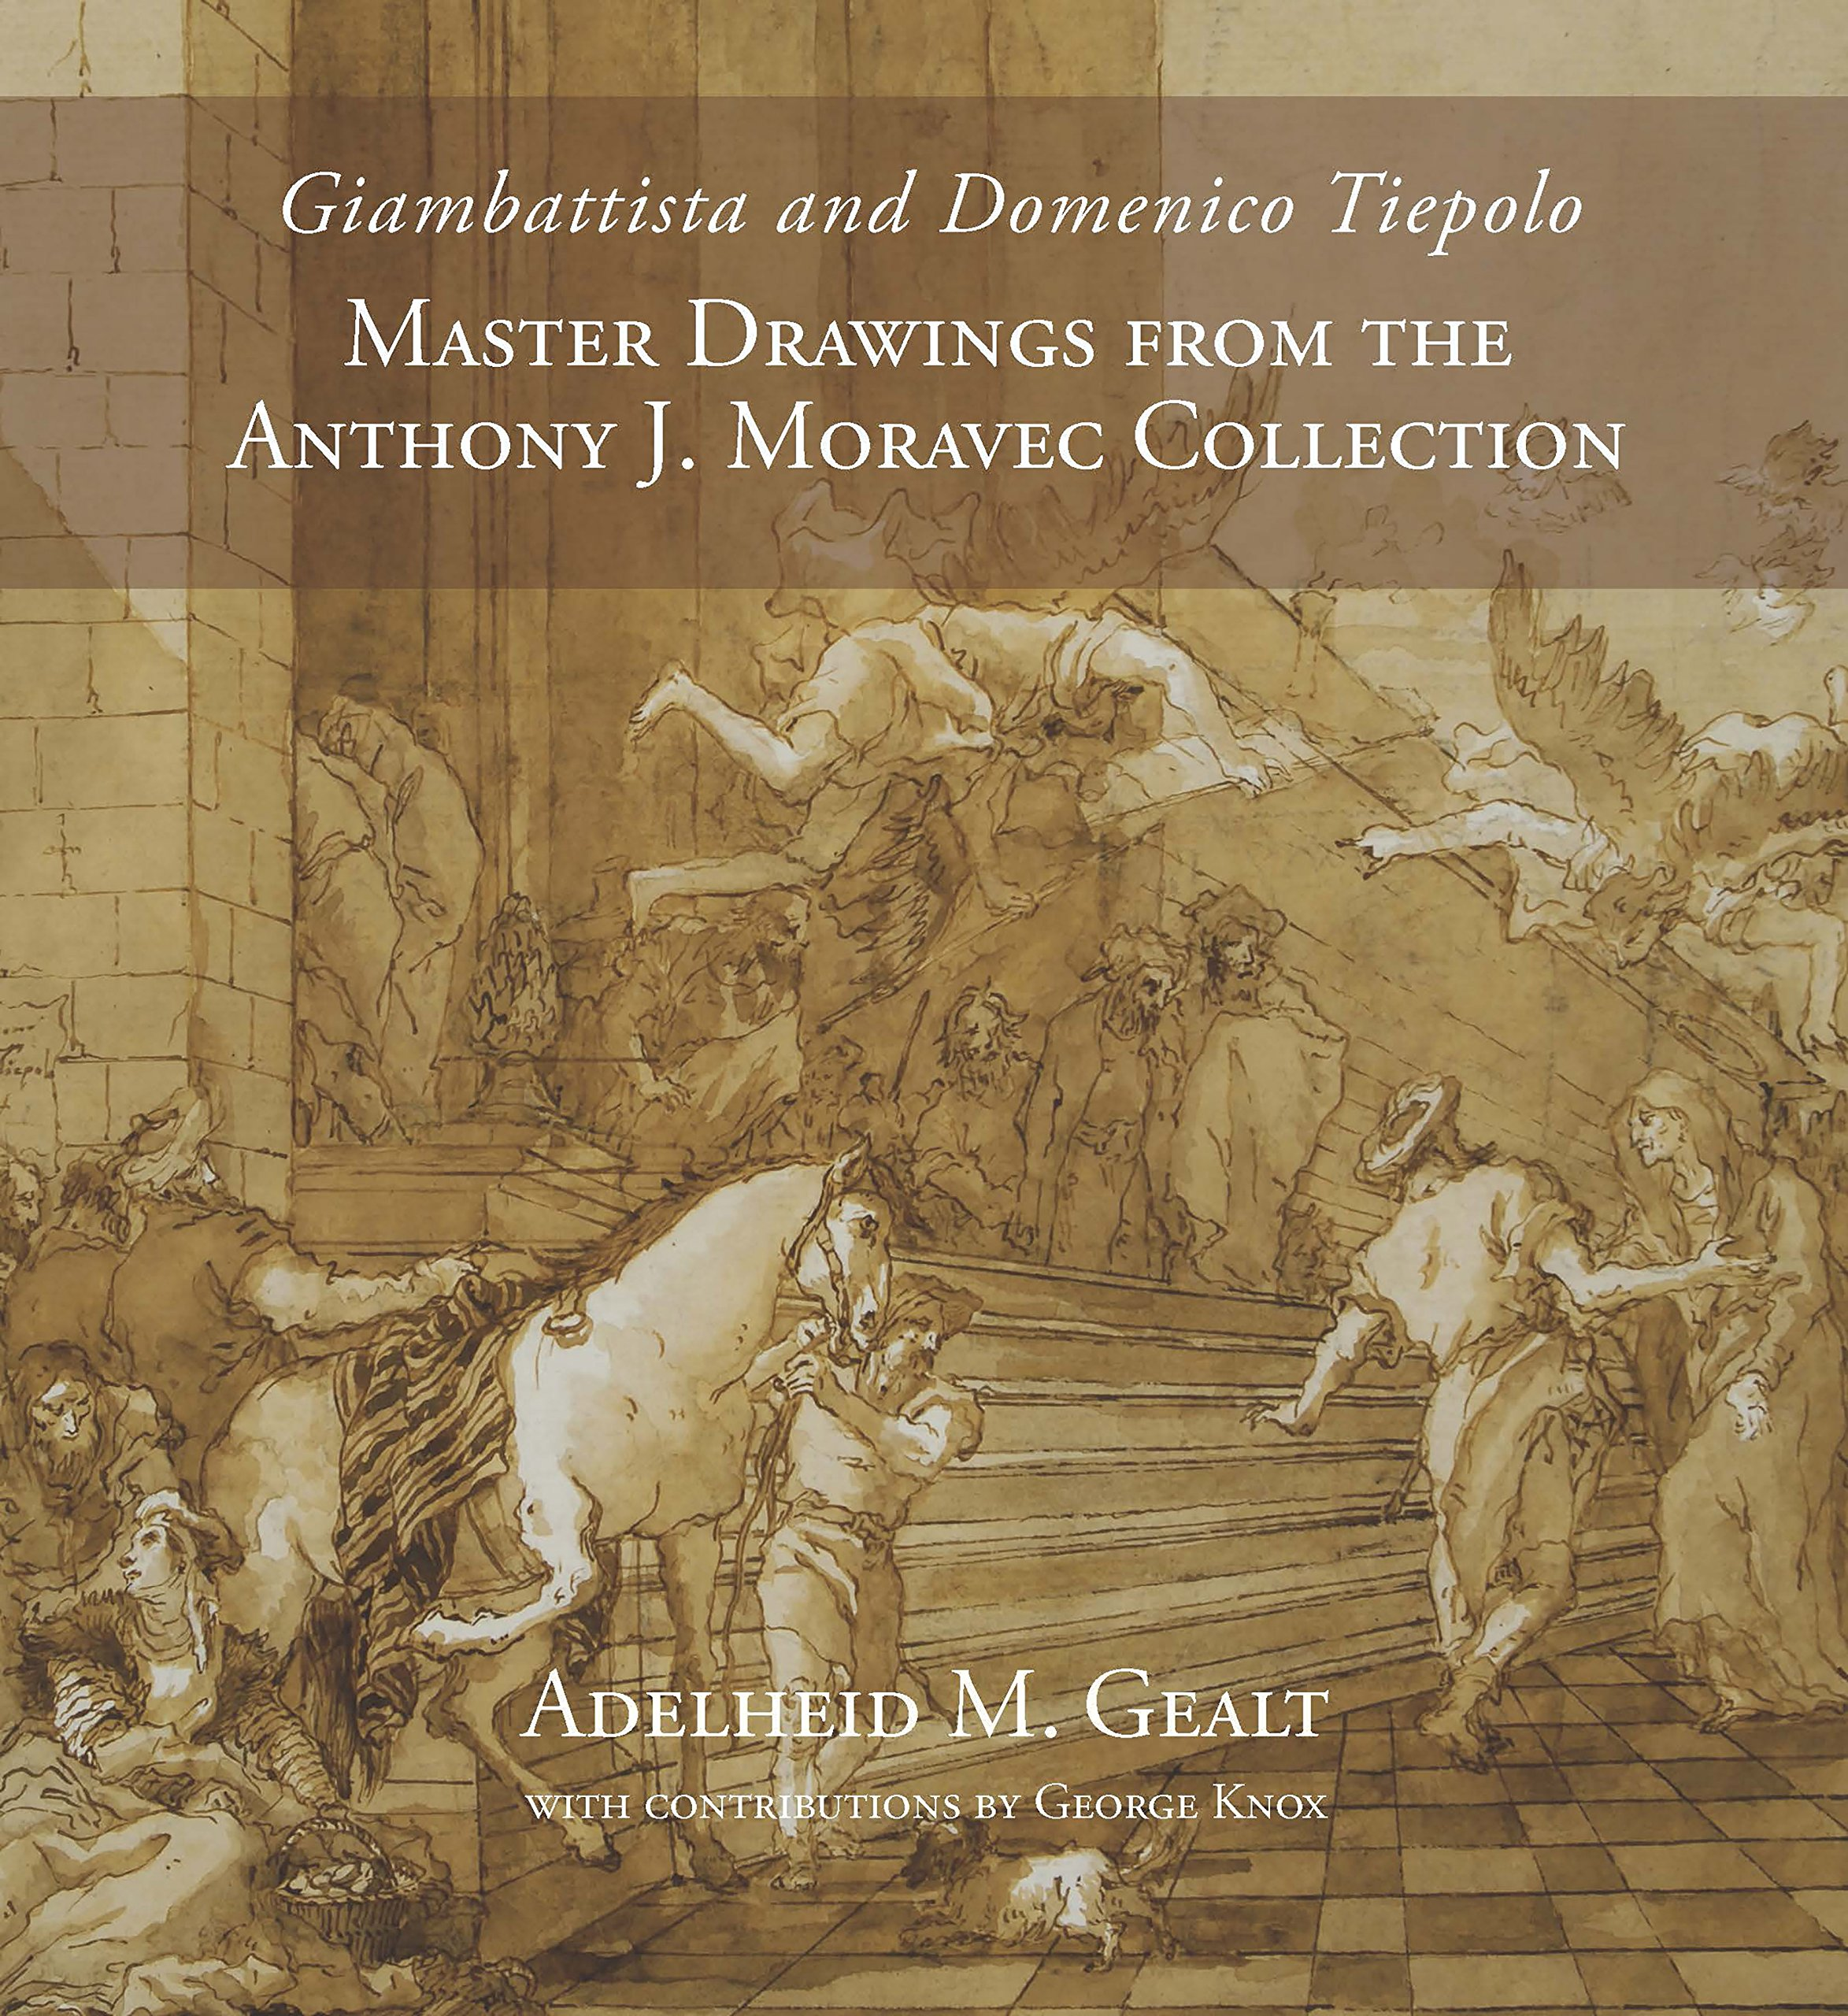 Giambattista and Domenico Tiepolo: Master Drawings from the Anthony J. Moravec Collection